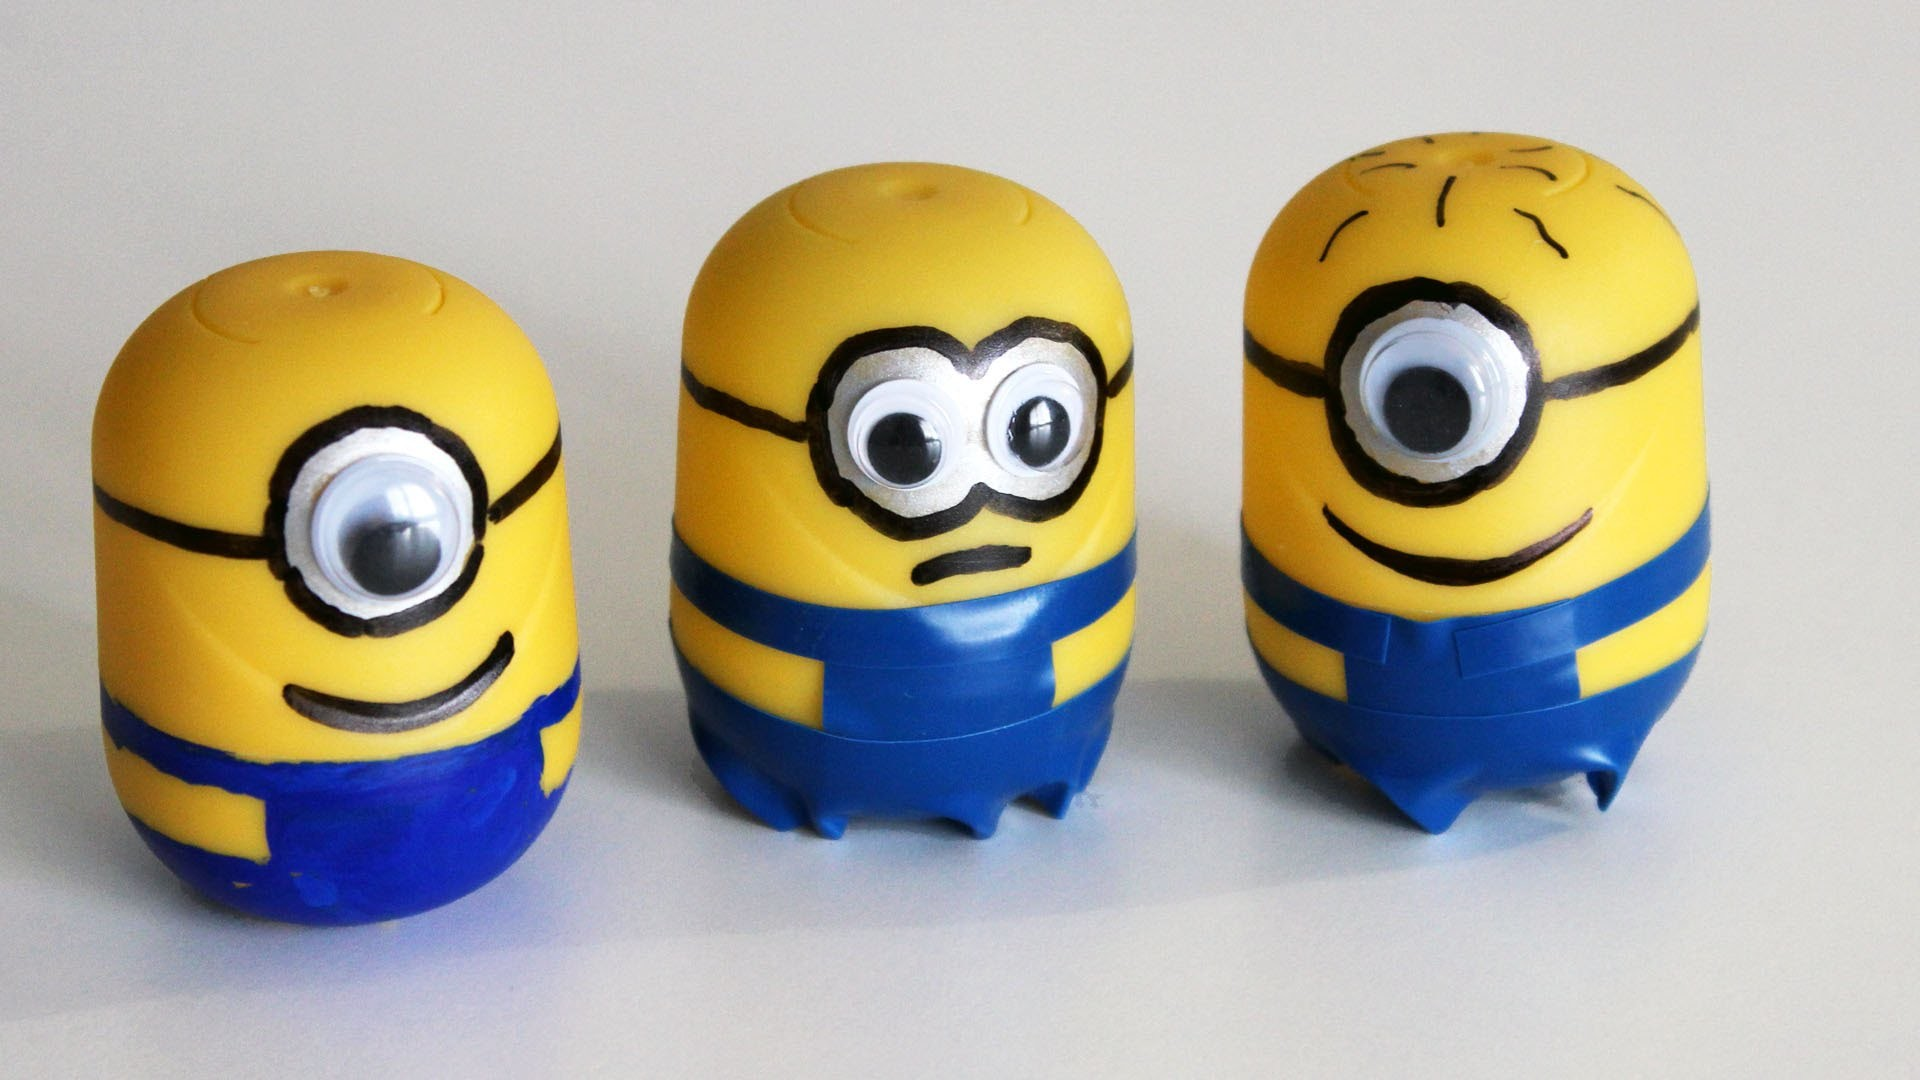 Cómo hacer minions con Kinder Sorpresa - How to make Minions with Kinder Surprise Eggs